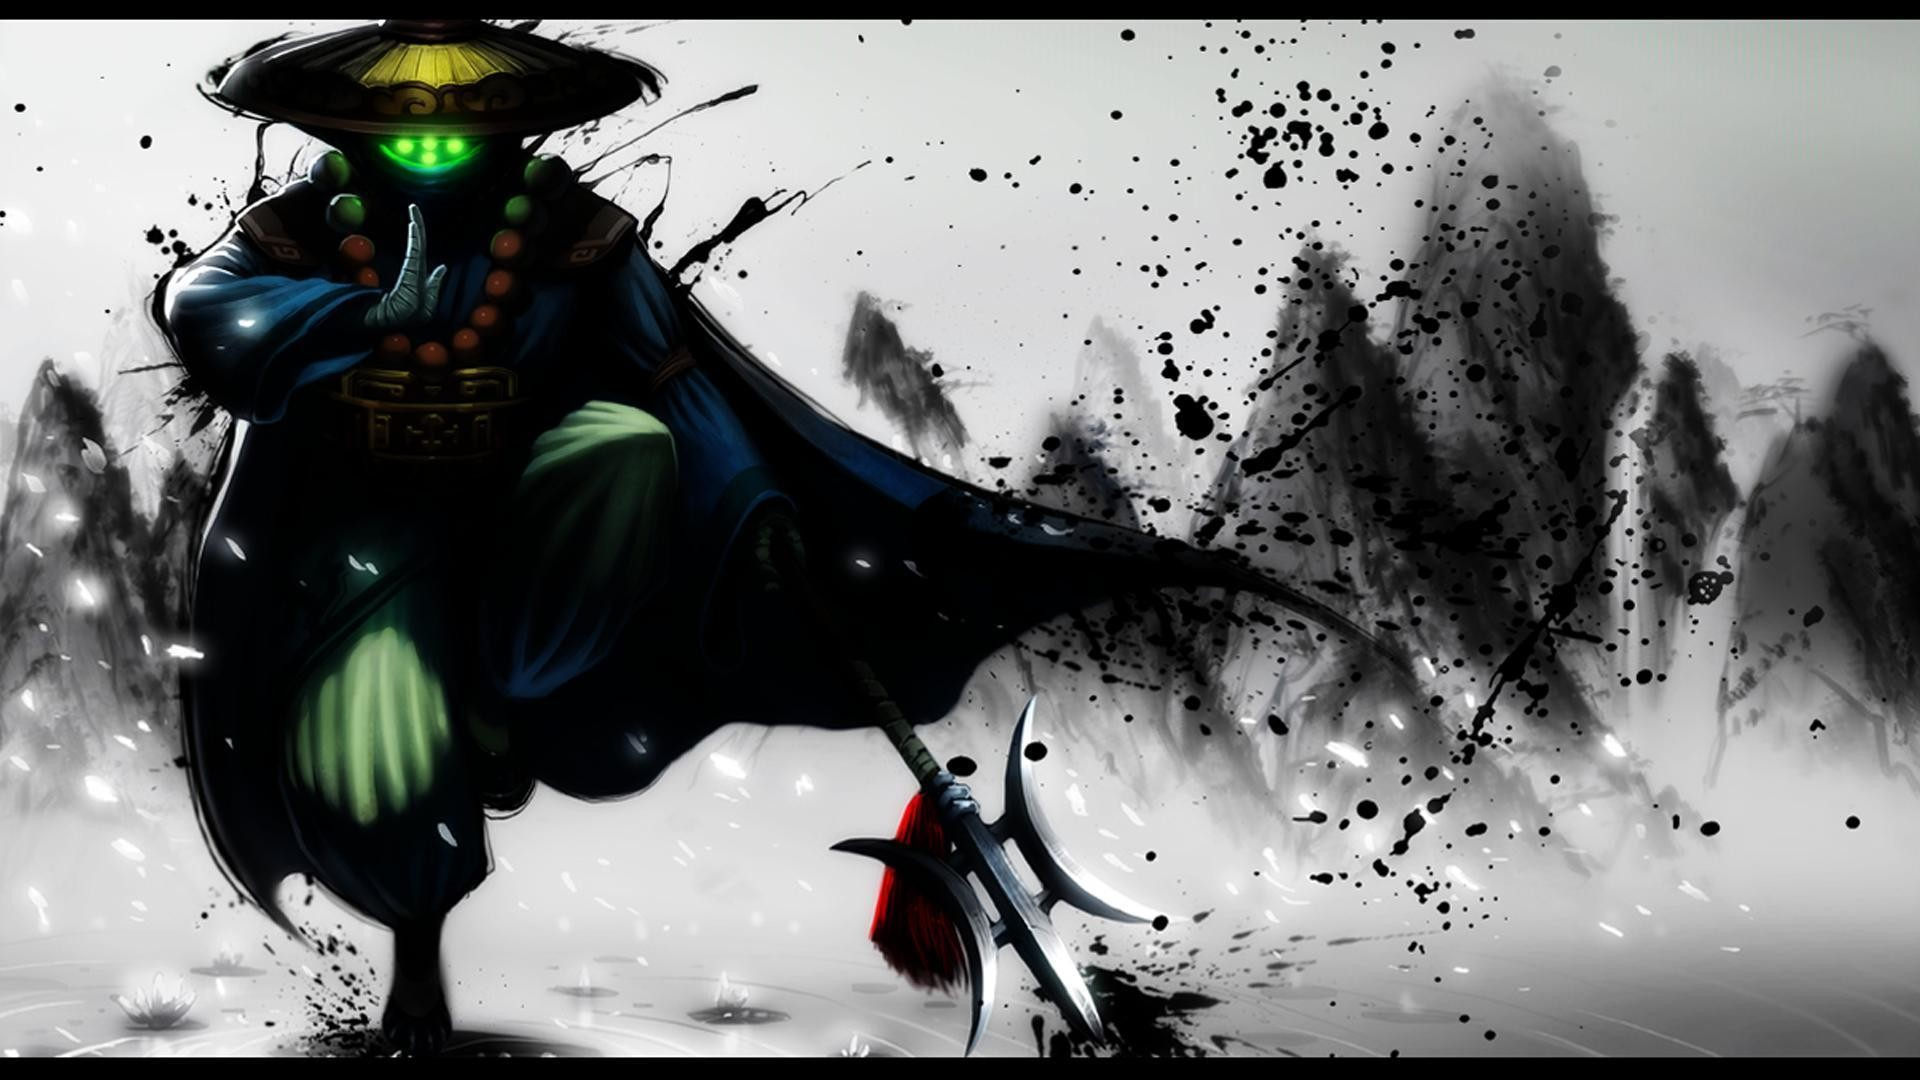 1920x1080 Jax LOL Wallpaper 70631 Images HD Wallpapers| Wallpapers & Backgrounds